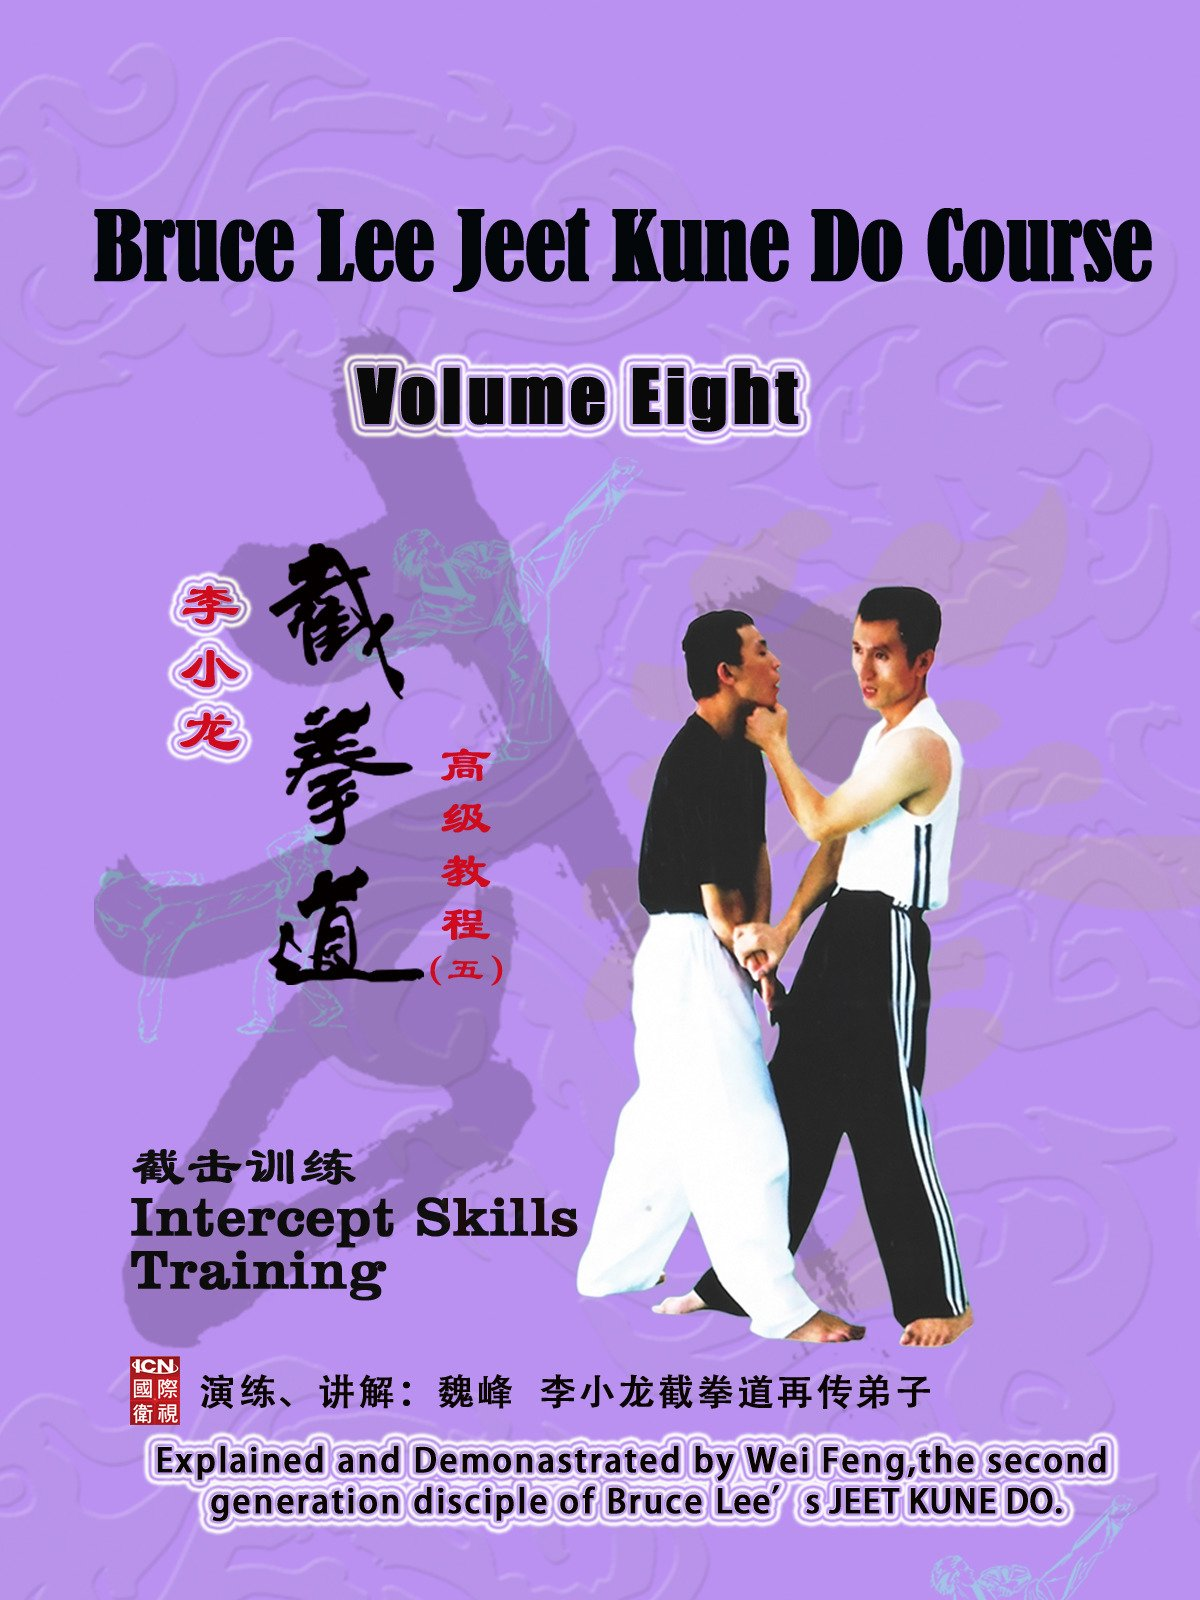 Bruce Lee Jeet Kune Do Course Volume Eight